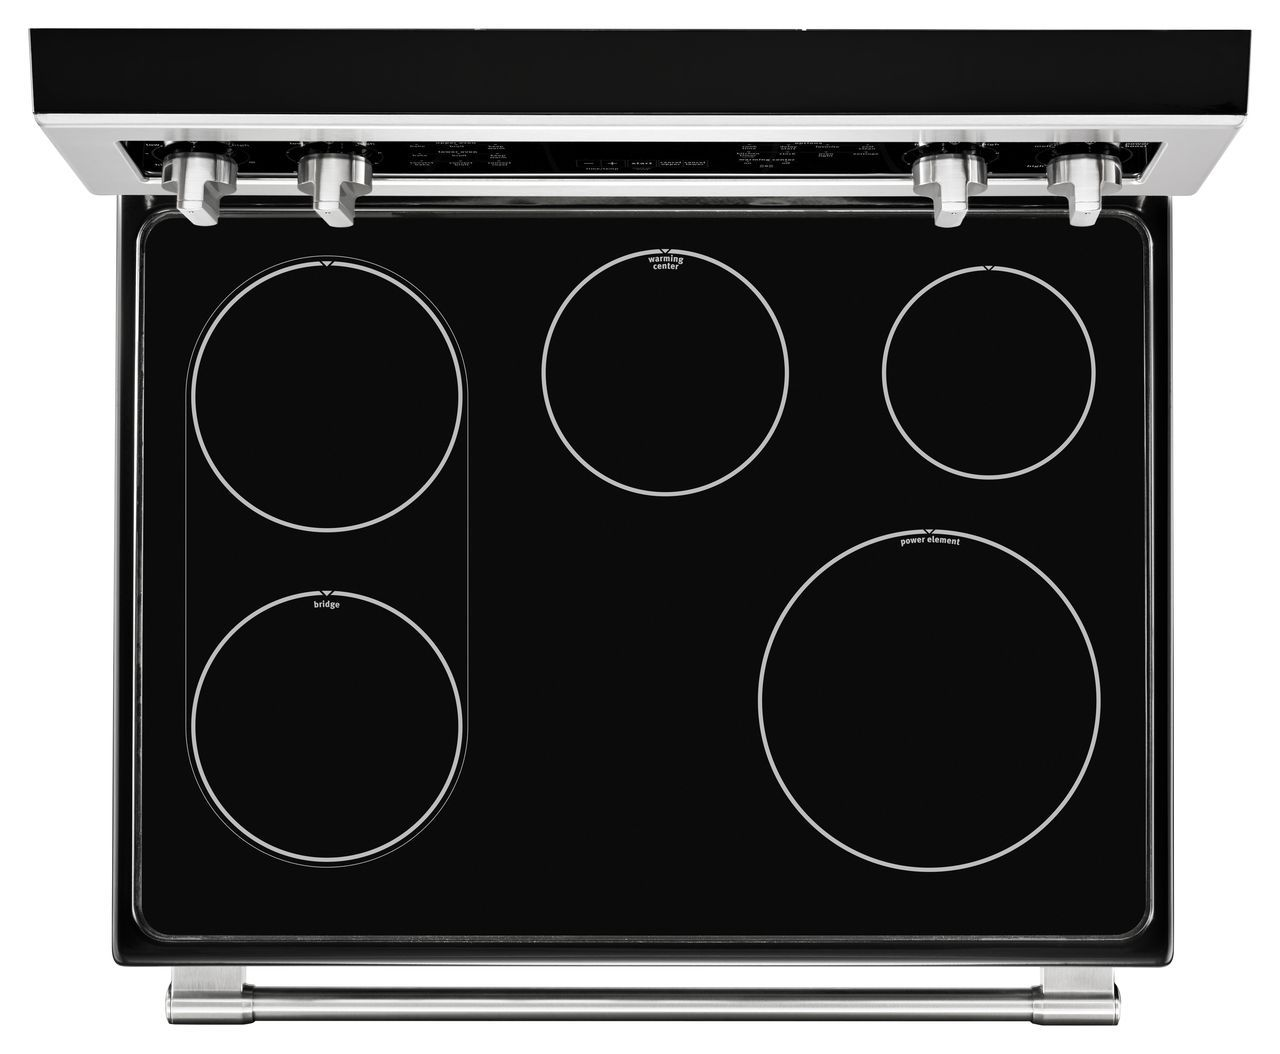 Maytag 30 Free Standing Double Oven Electric Range Fingerprint Wiring Diagram Resistant Stainless Steel